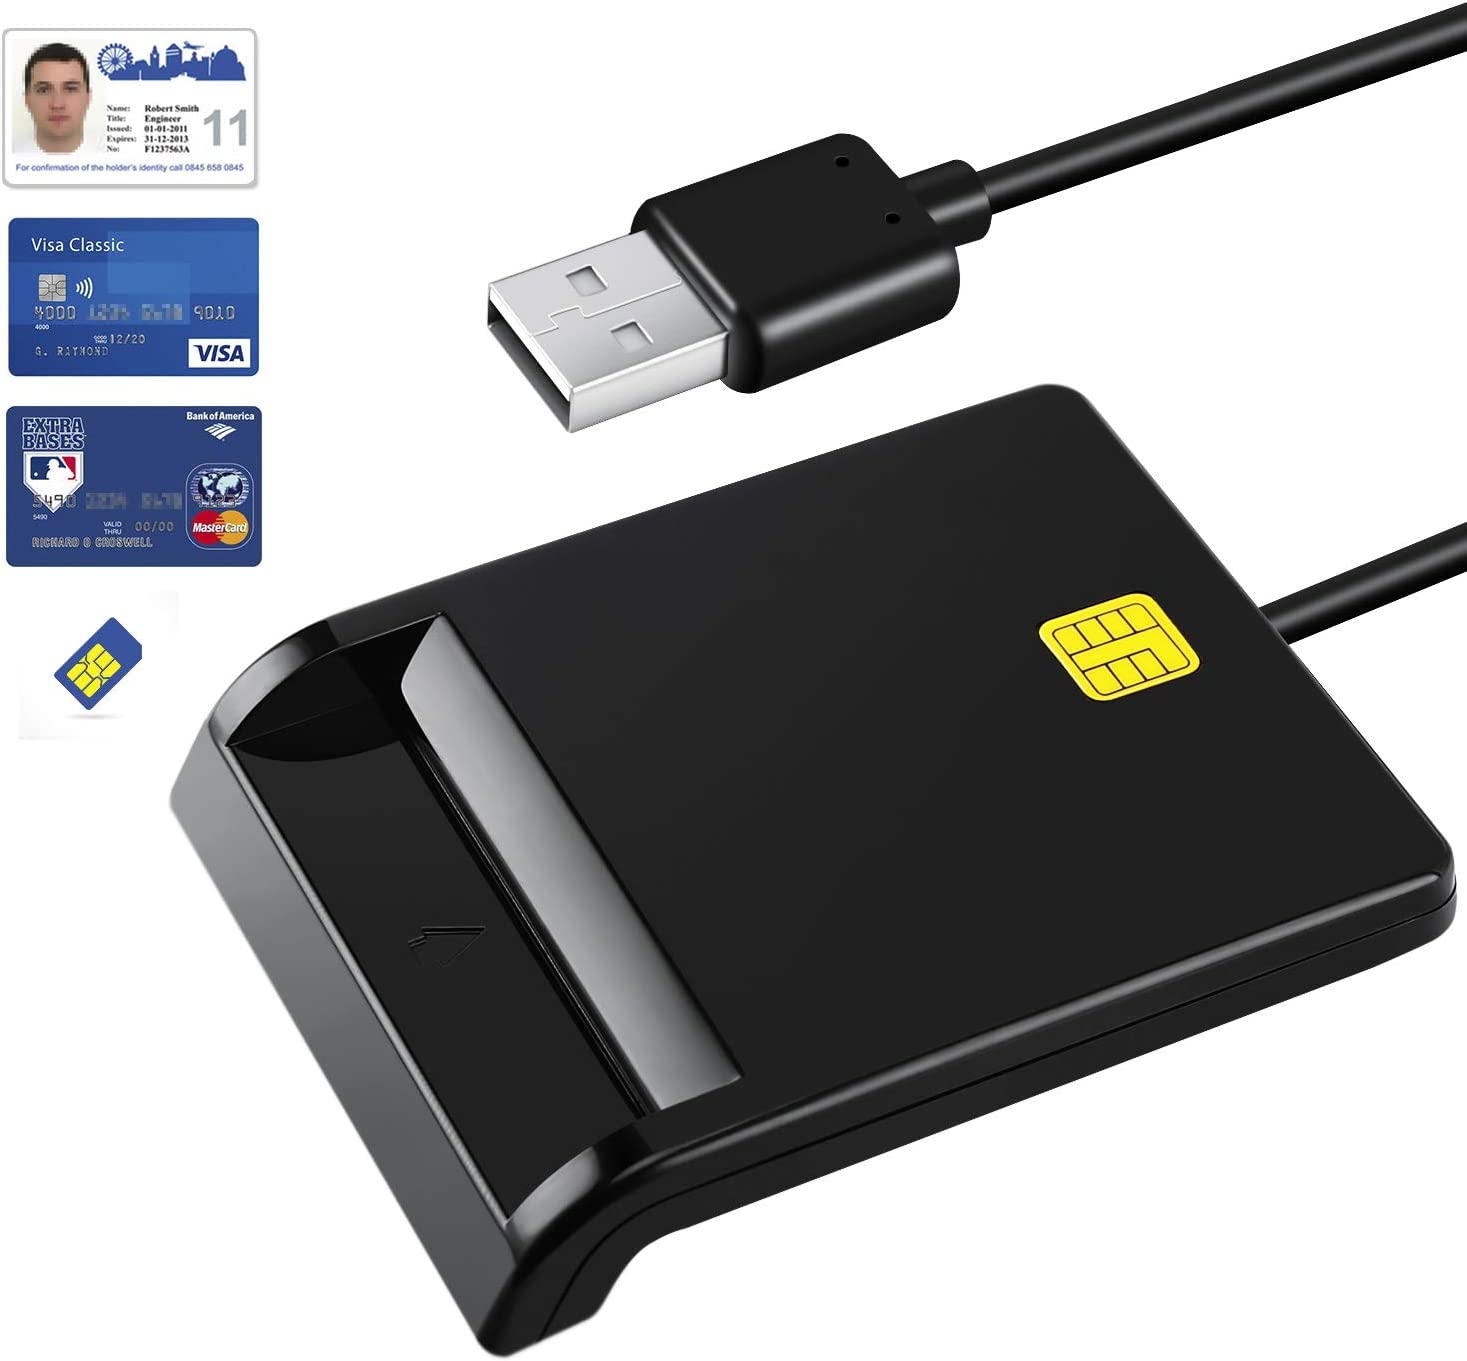 MMUSC CAC Smart Card Reader DOD Military USB Common Access, Compatible with Mac OS, Windows, Linux, Black